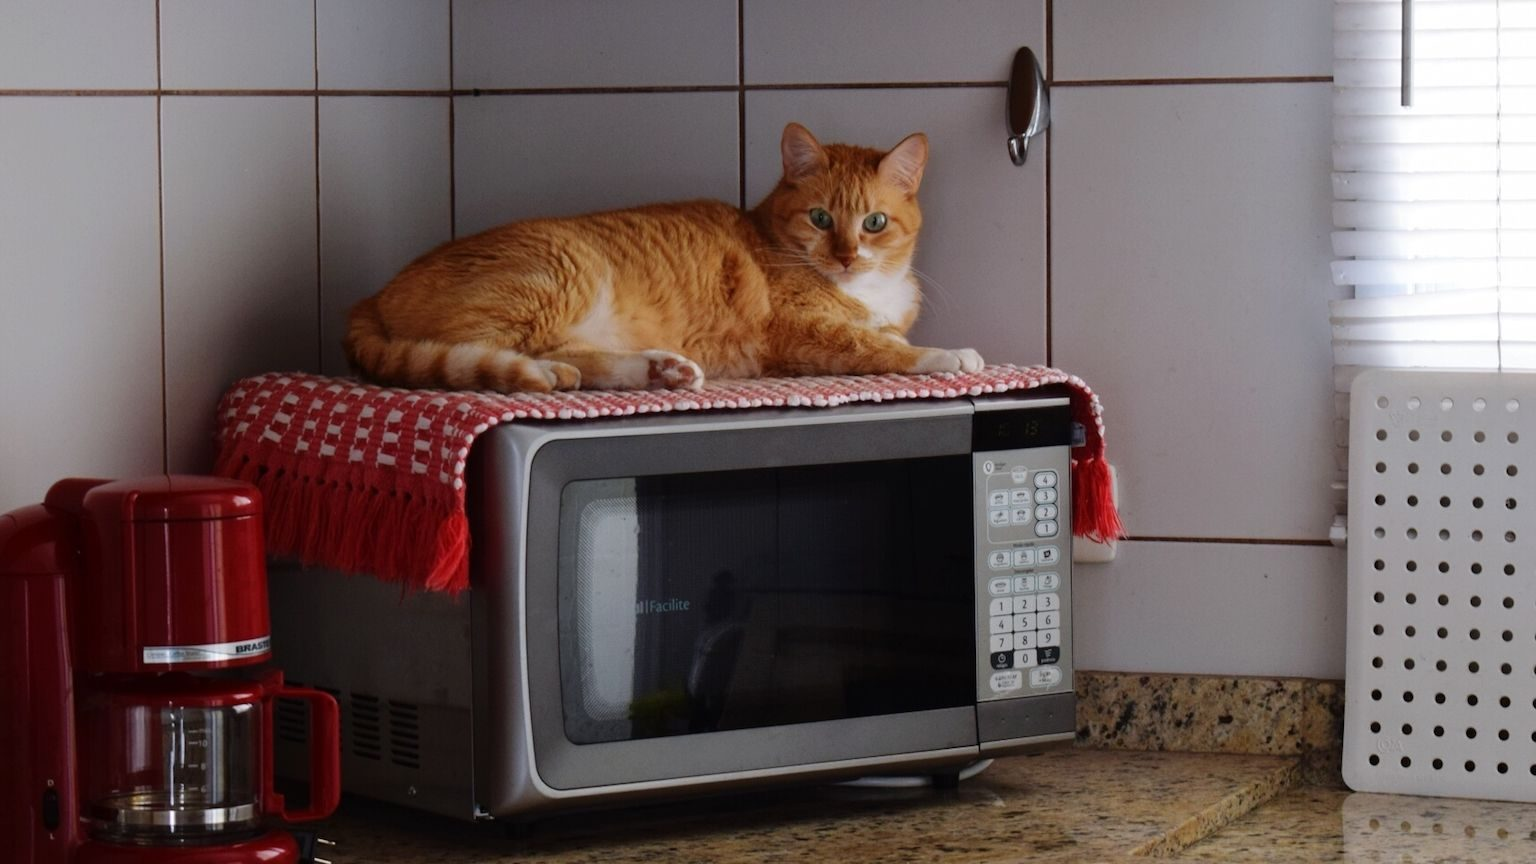 Cat sitting on a microwave